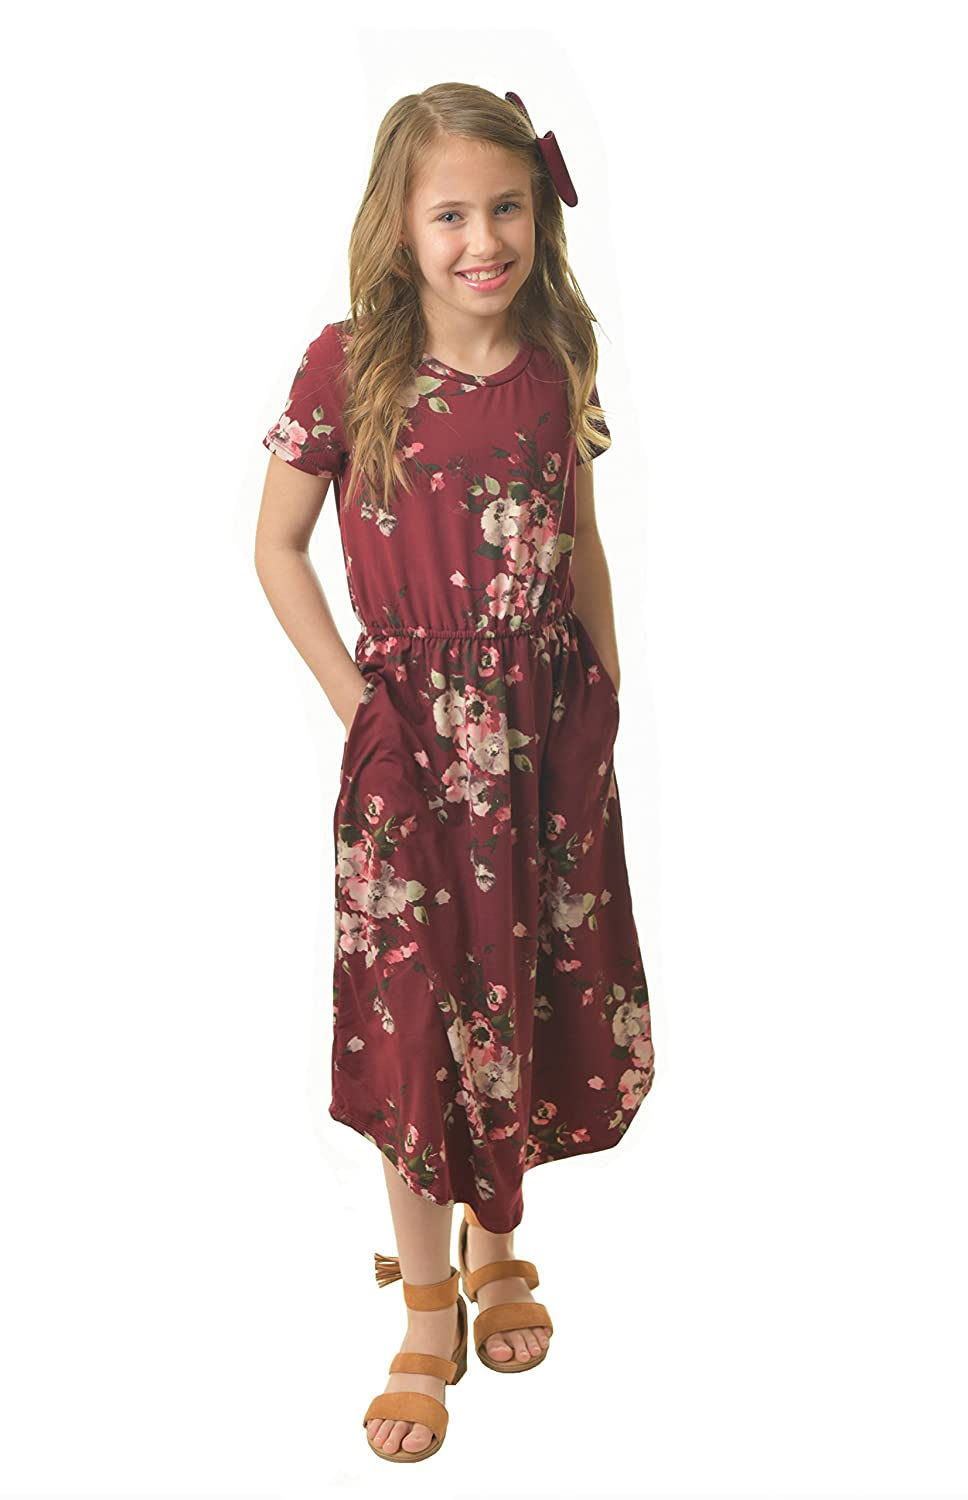 b057844ae8 Amazon.com: Chrome Classic Girls Midi Floral Dress w/Short Sleeves Made in  The USA: Clothing